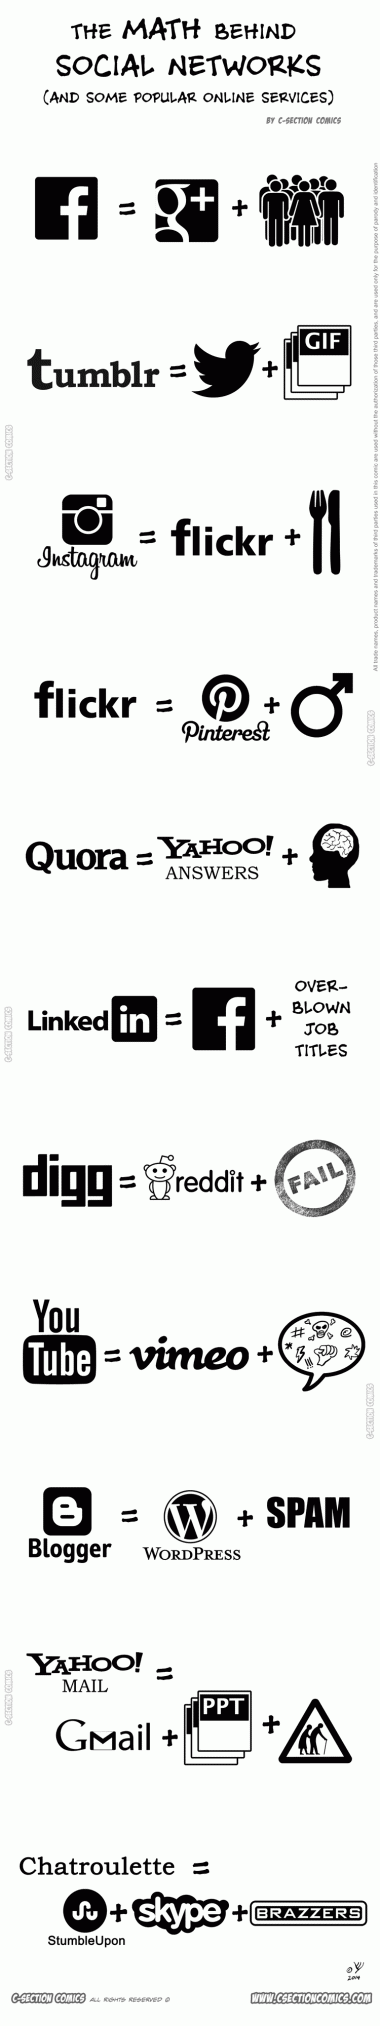 The Math Behind Social Networks - Funny Infographic by C-Section Comics